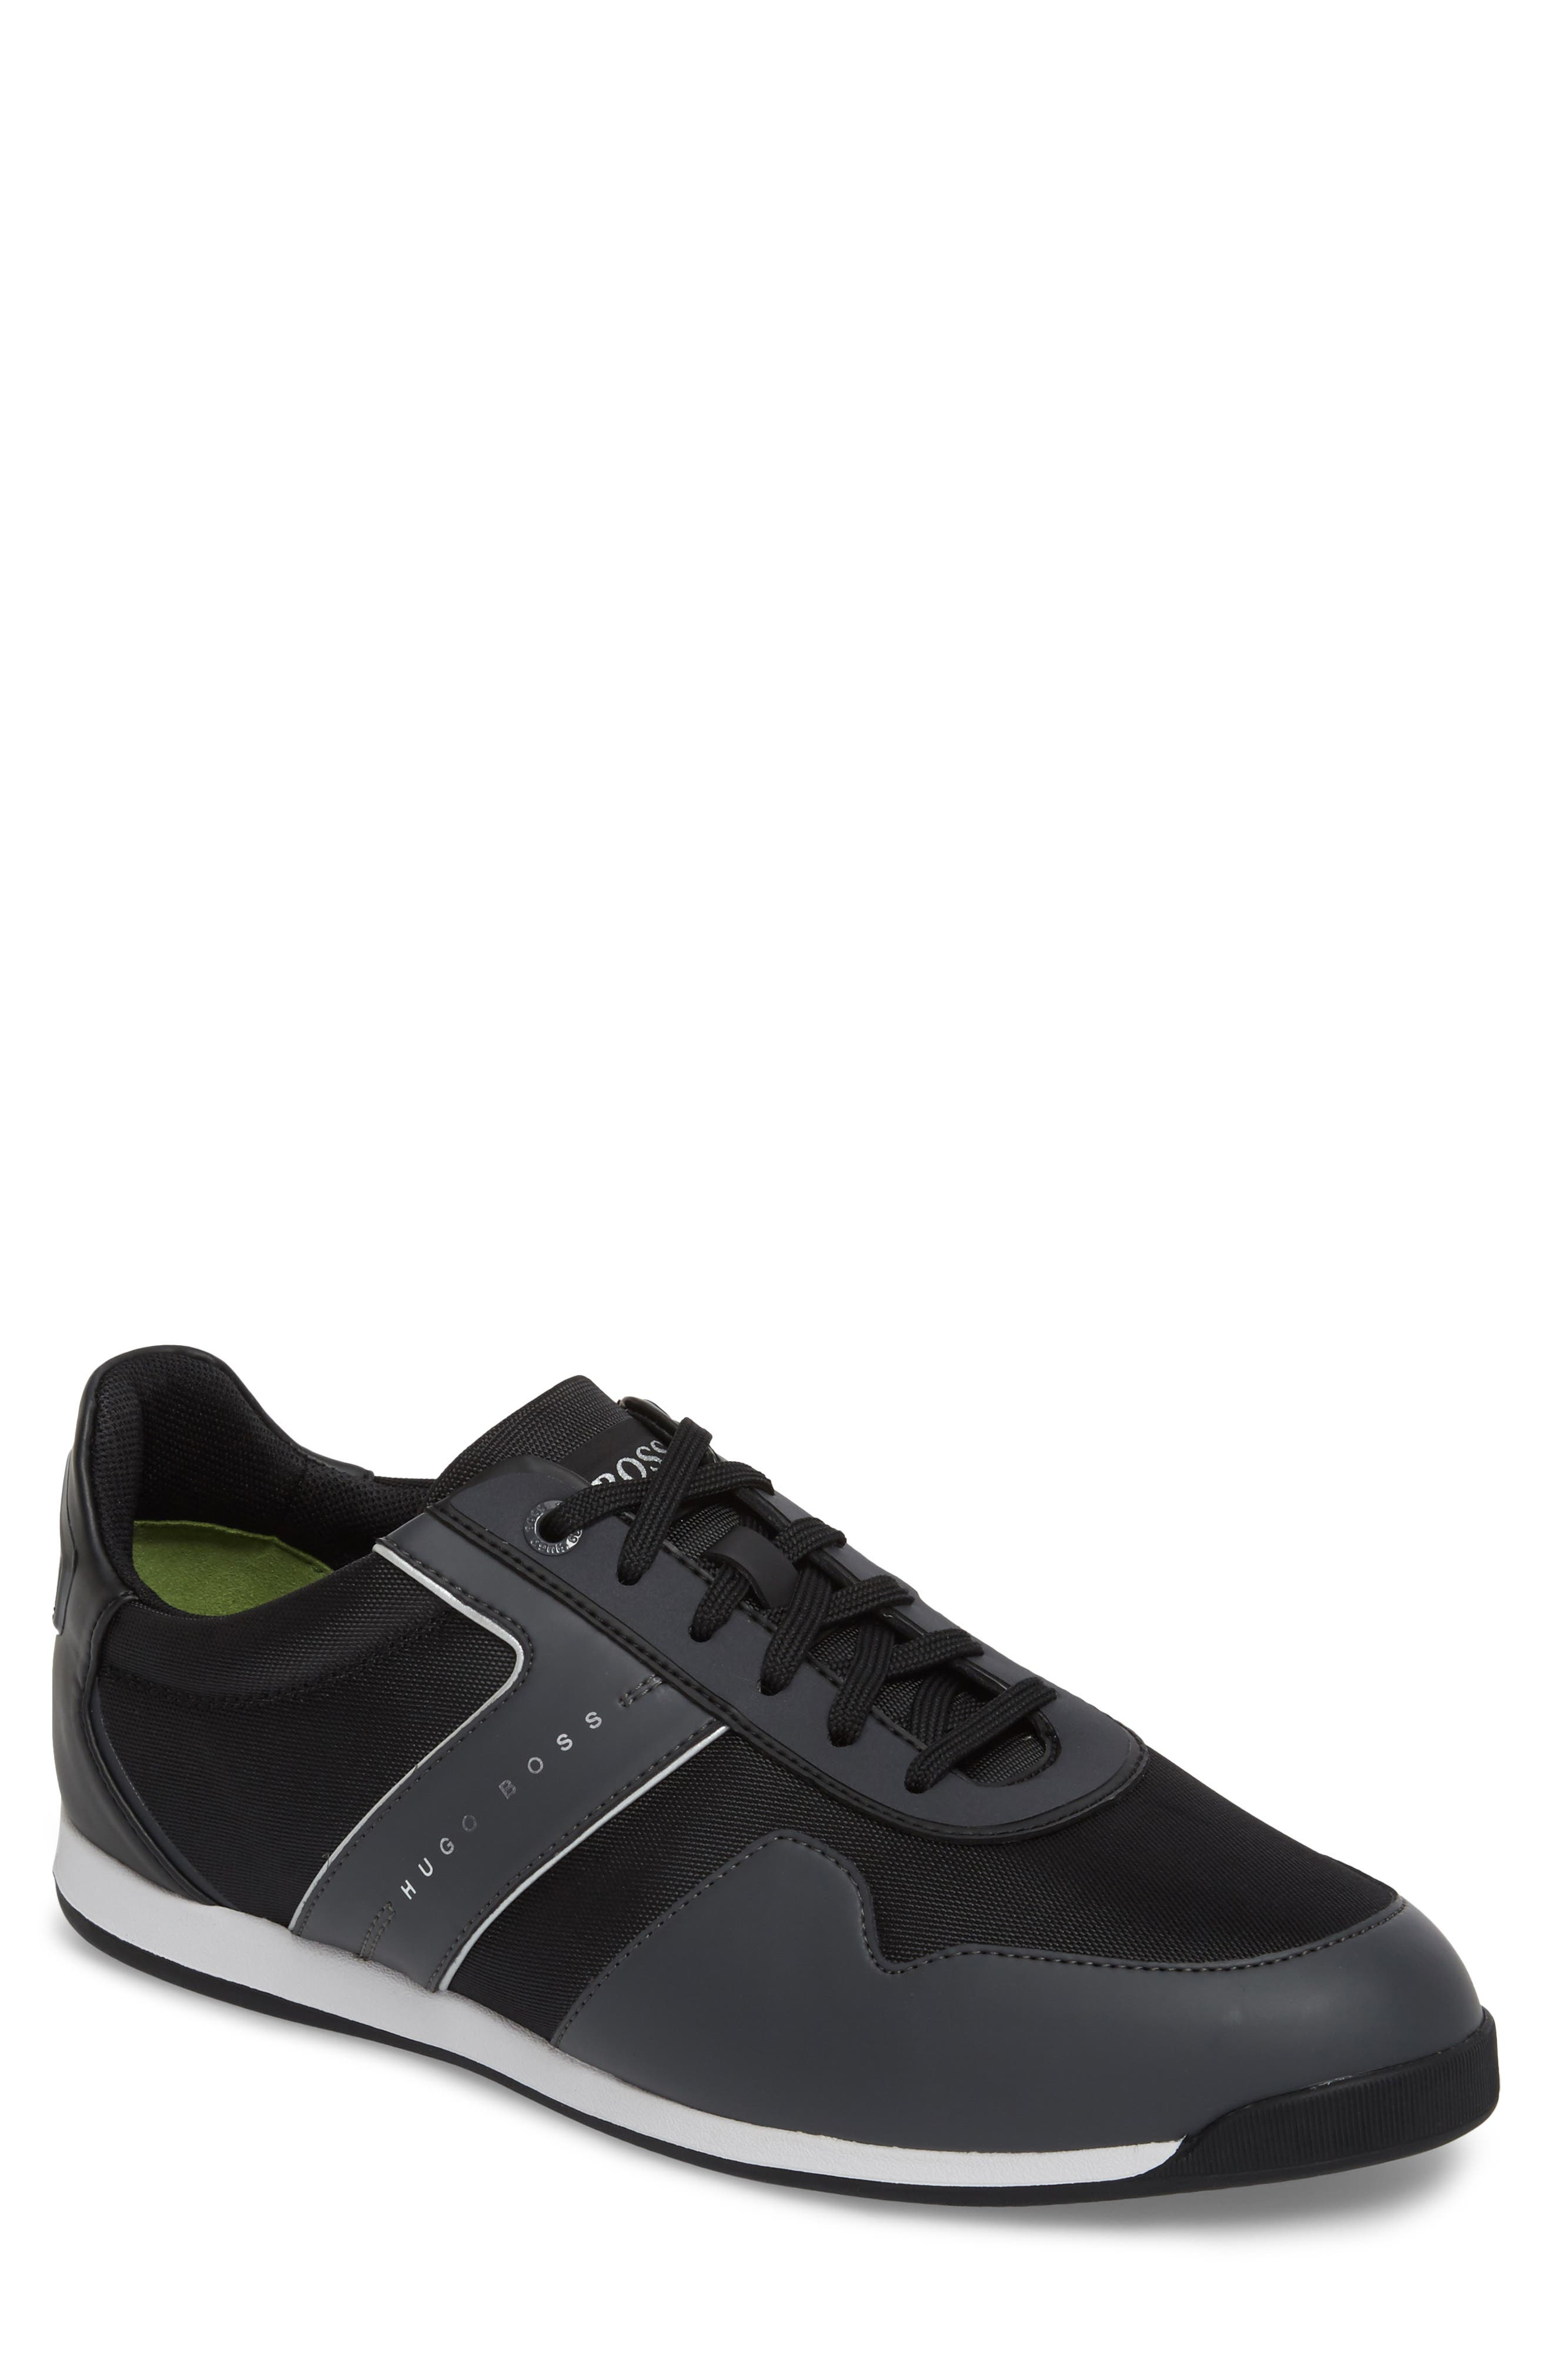 Maze Water Resistant Low Top Sneaker,                         Main,                         color, CHARCOAL